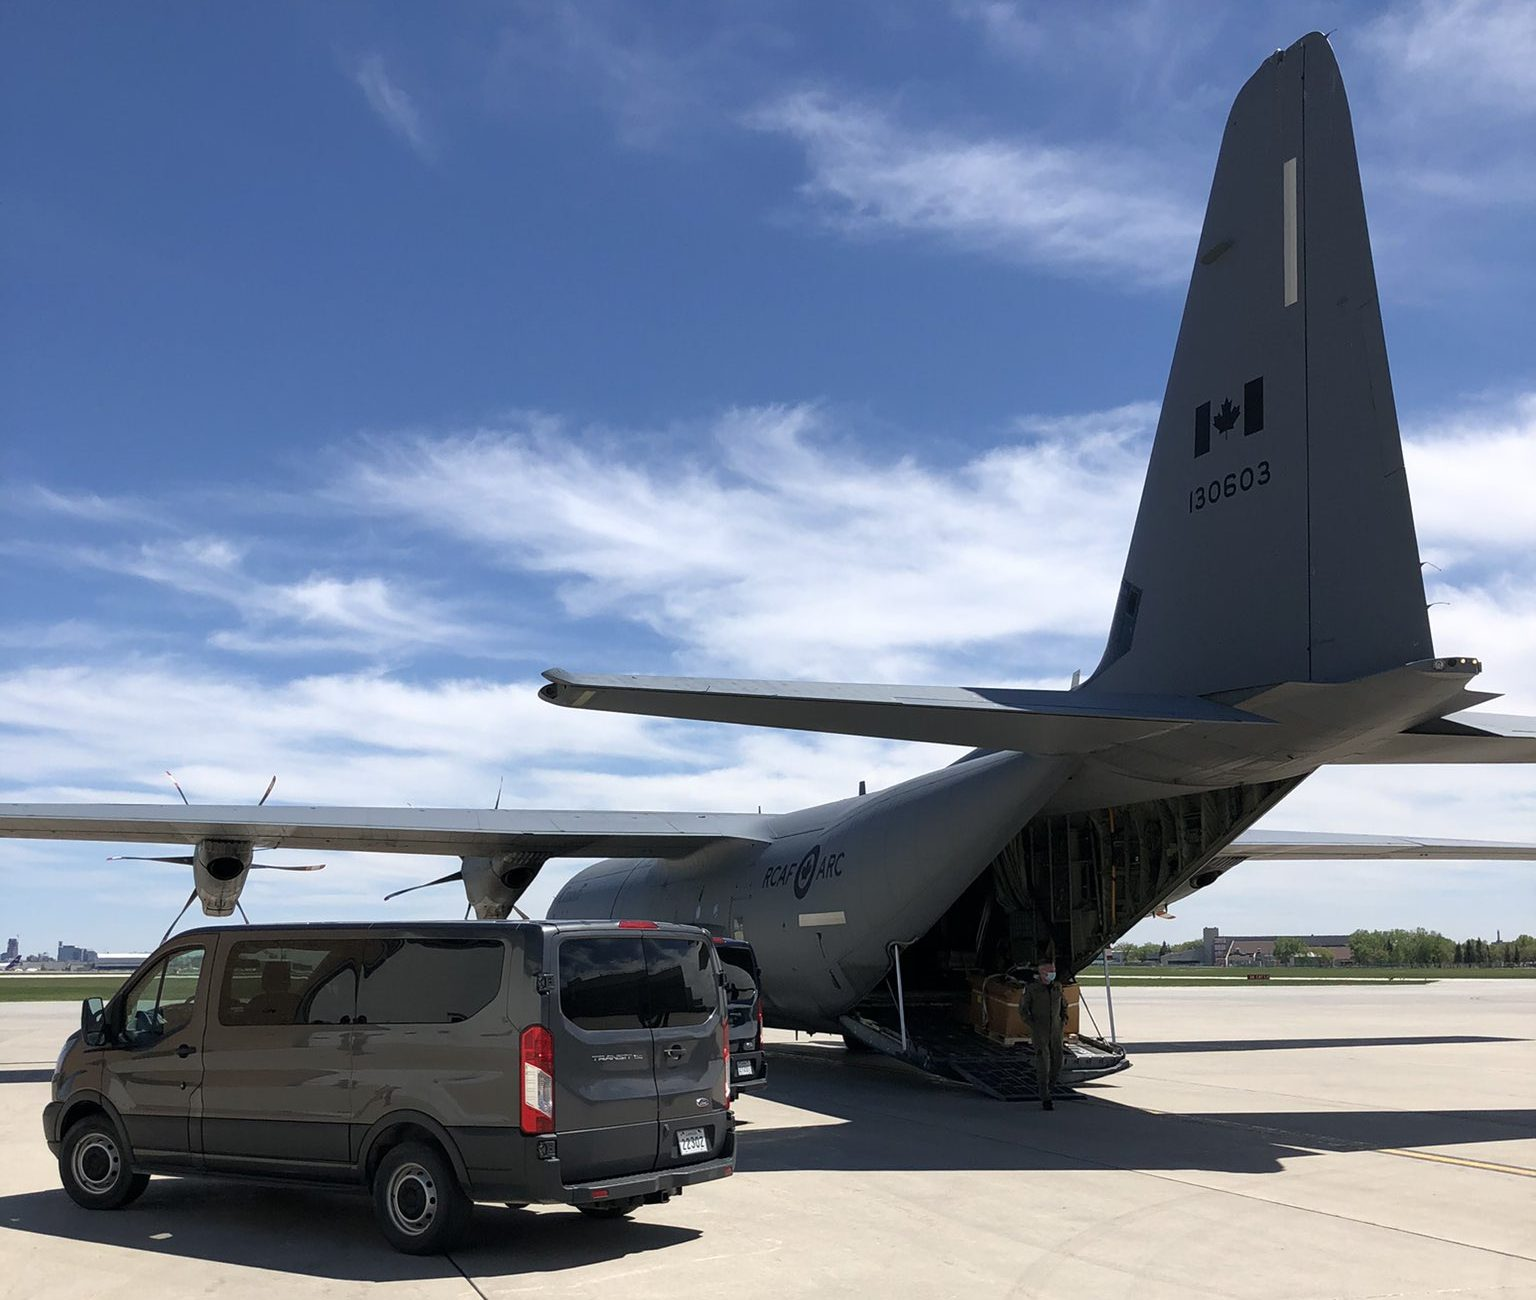 Medically equipped Hercules plane to transport Manitoba ICU patients to other provinces